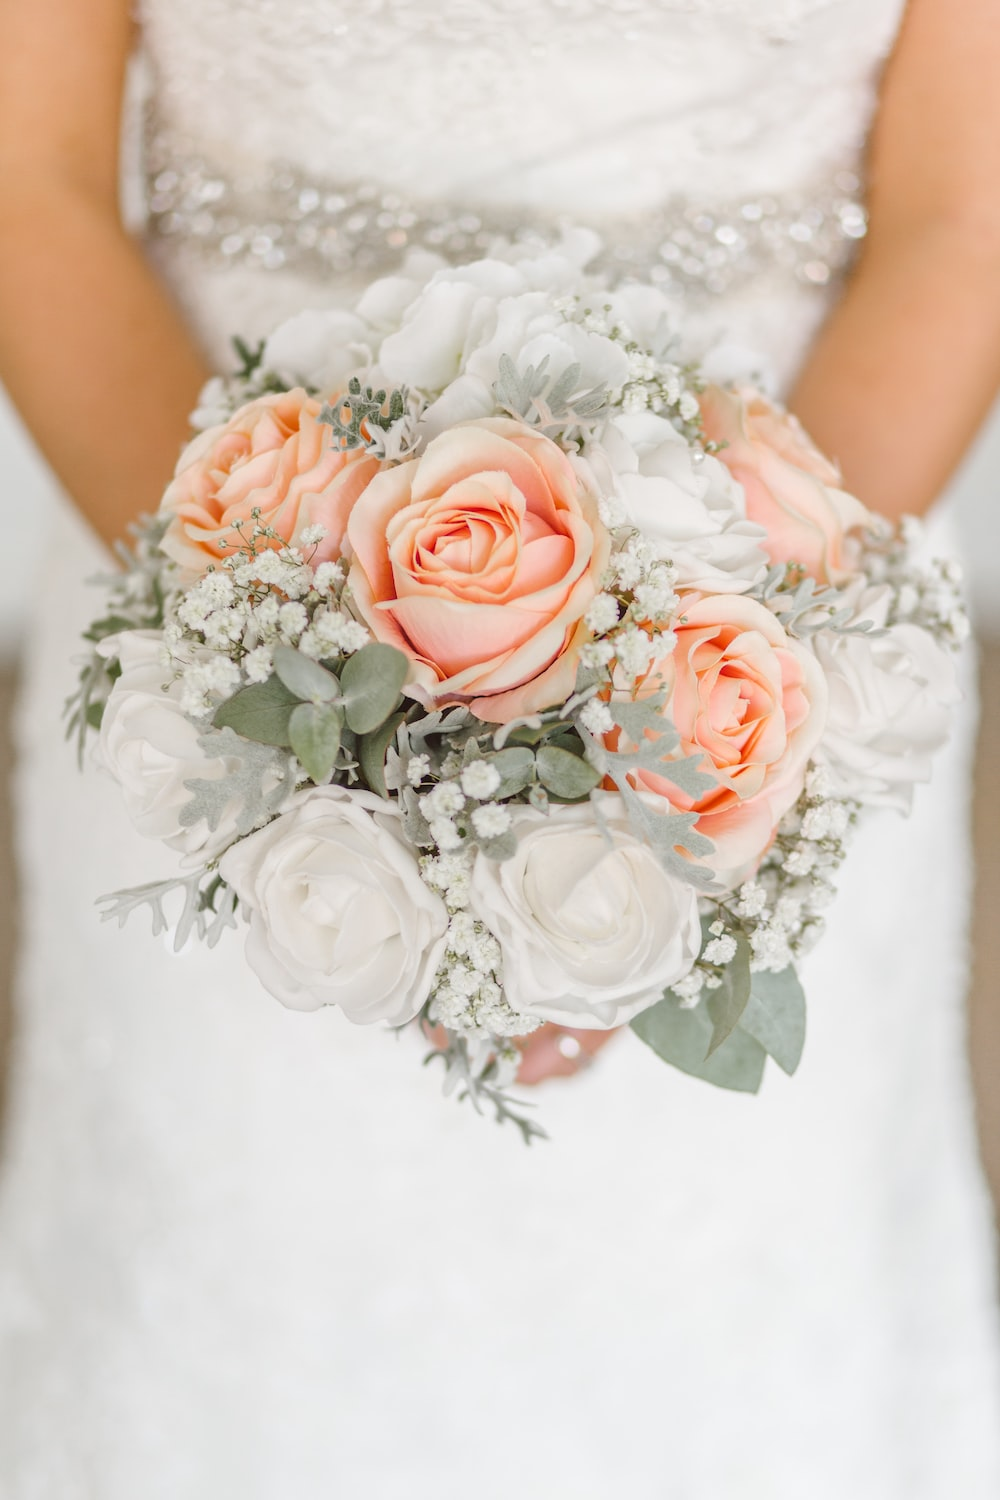 Wedding pictures download free images on unsplash woman holding white and pink rose flower bouquet izmirmasajfo